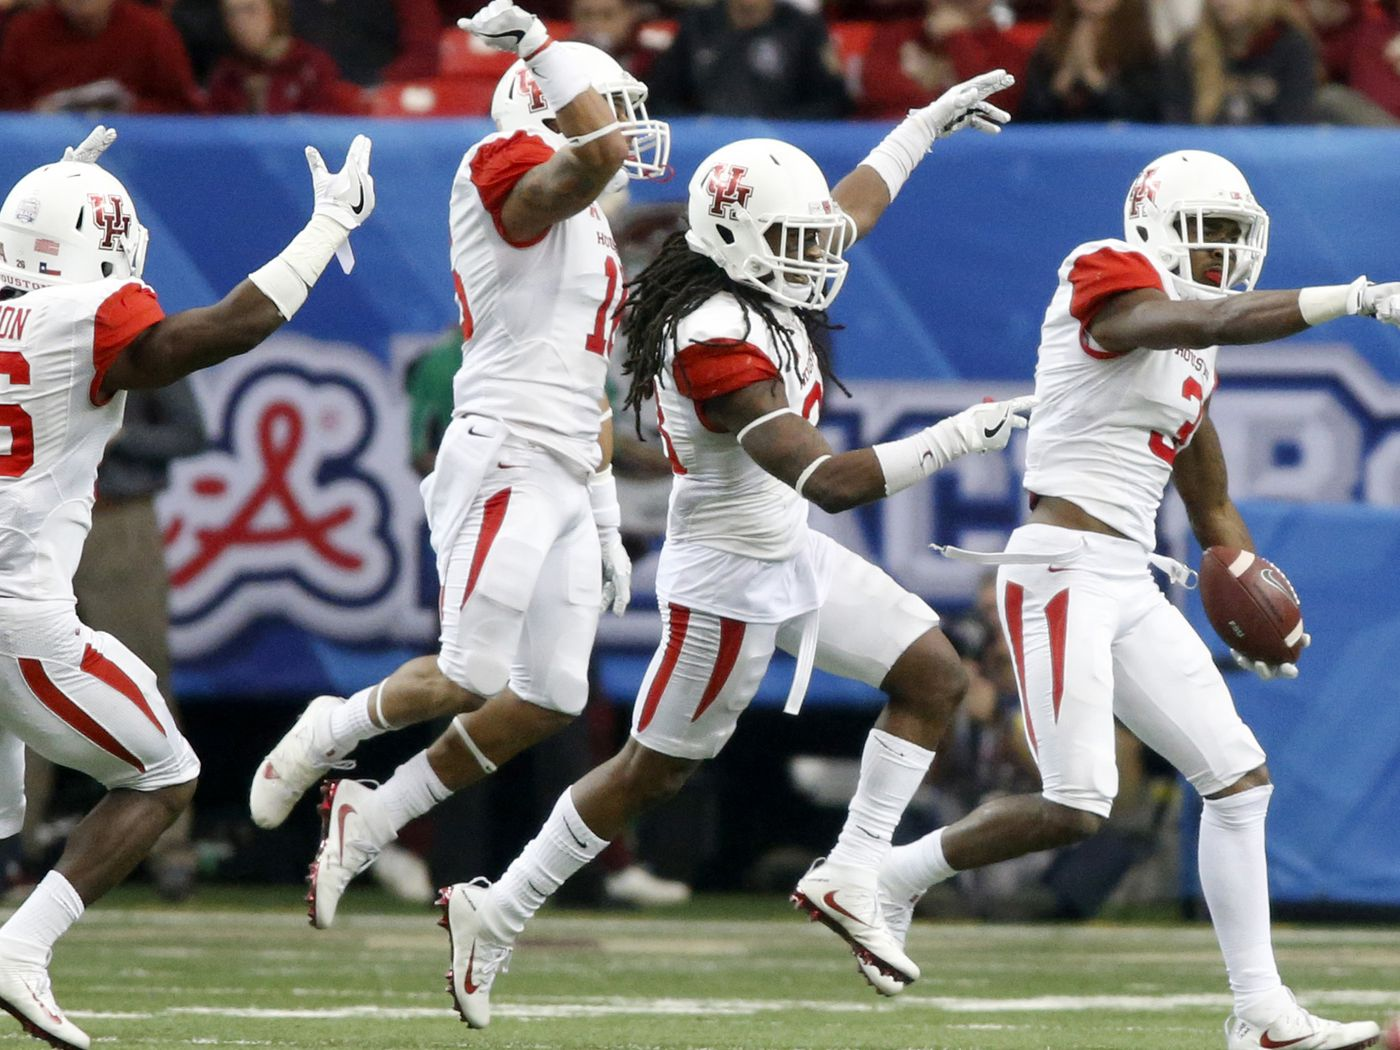 Peach bowl houston florida state betting line king george horse race betting tips